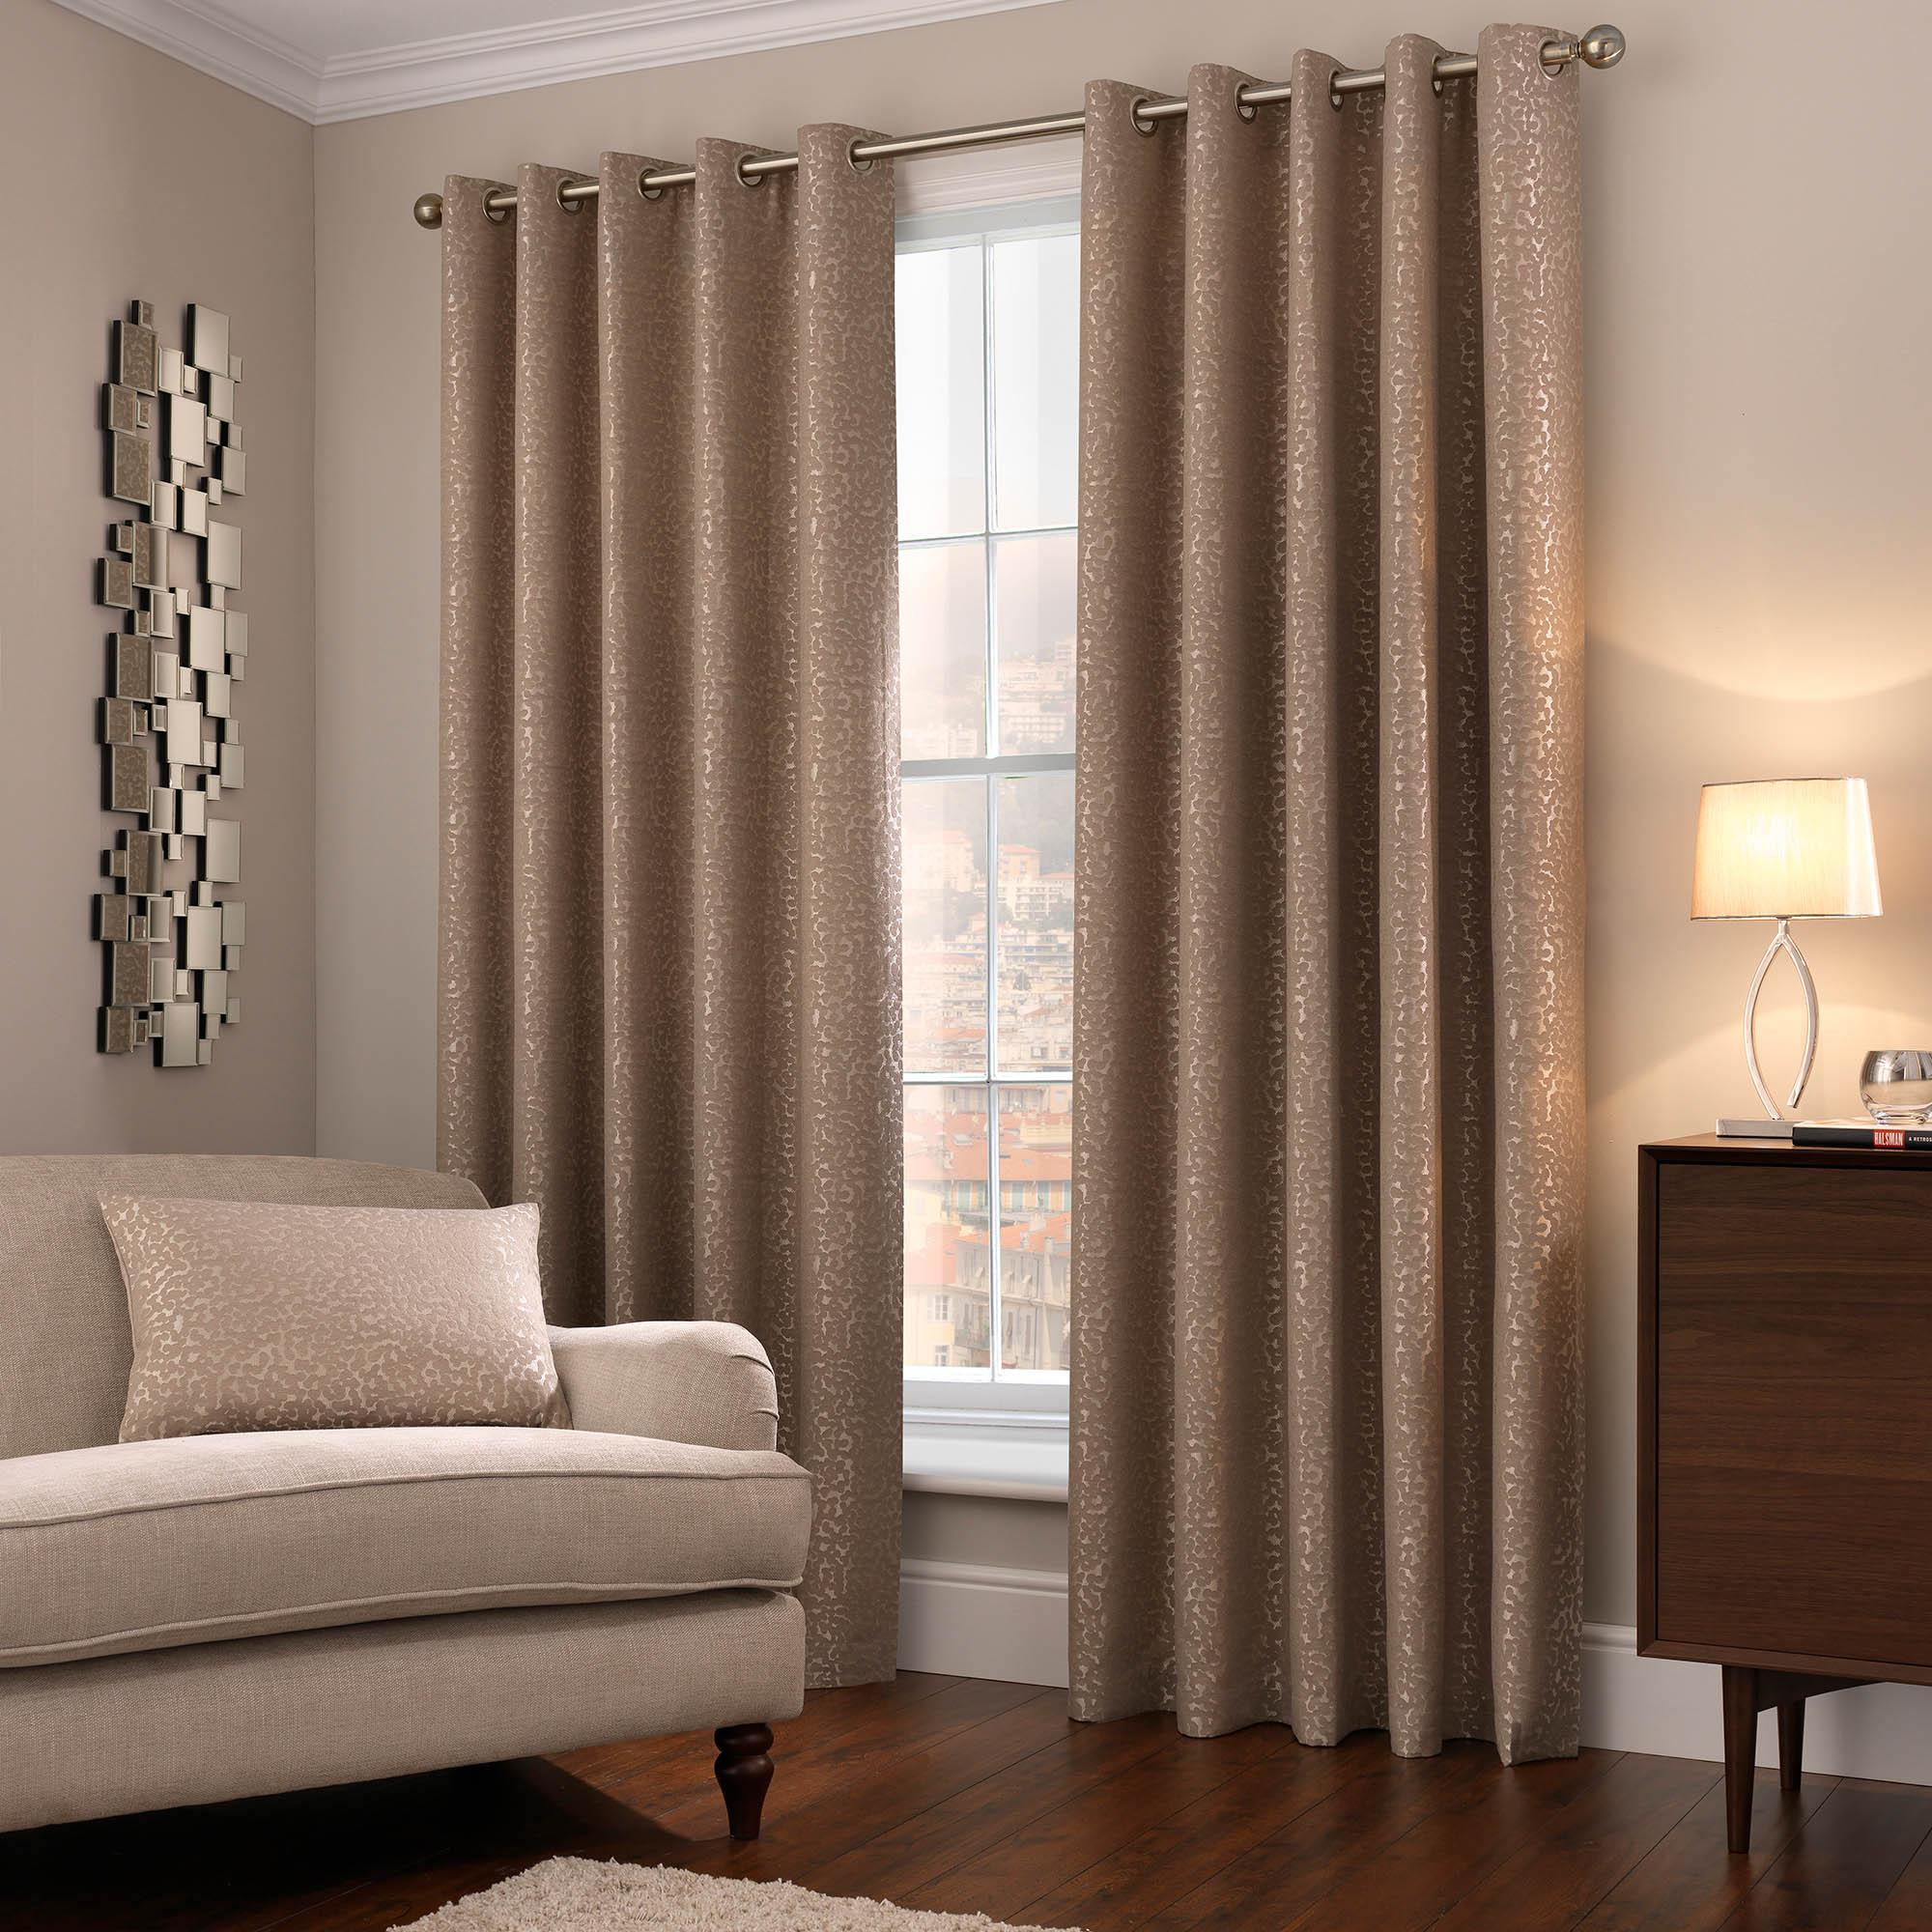 5a fifth avenue madison champagne eyelet curtains USCWKBM